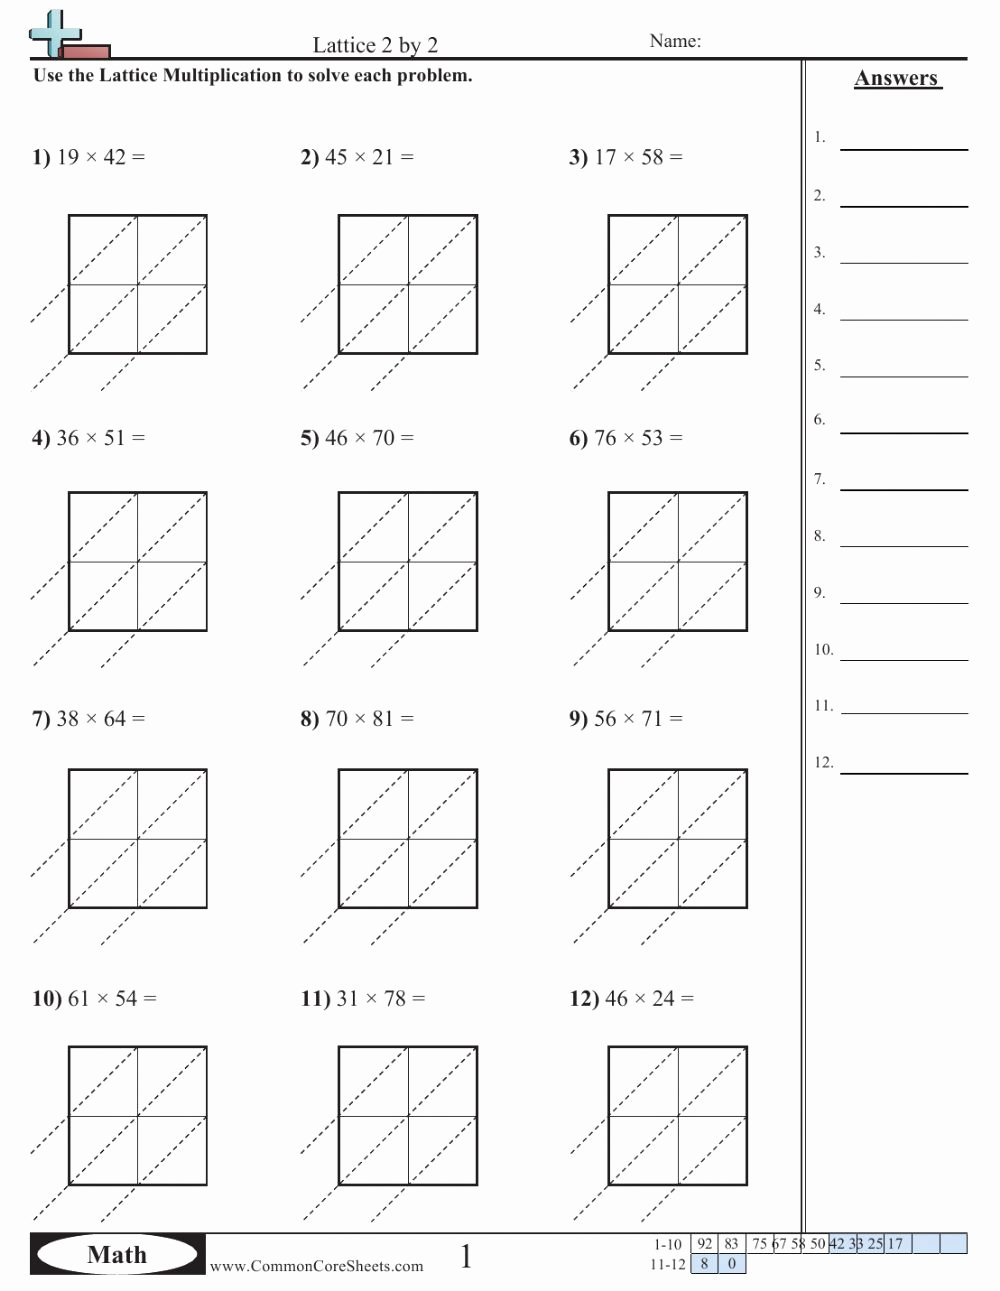 Lattice Multiplication Worksheets Best Of Lattice Multiplication 3 Interactive Worksheet